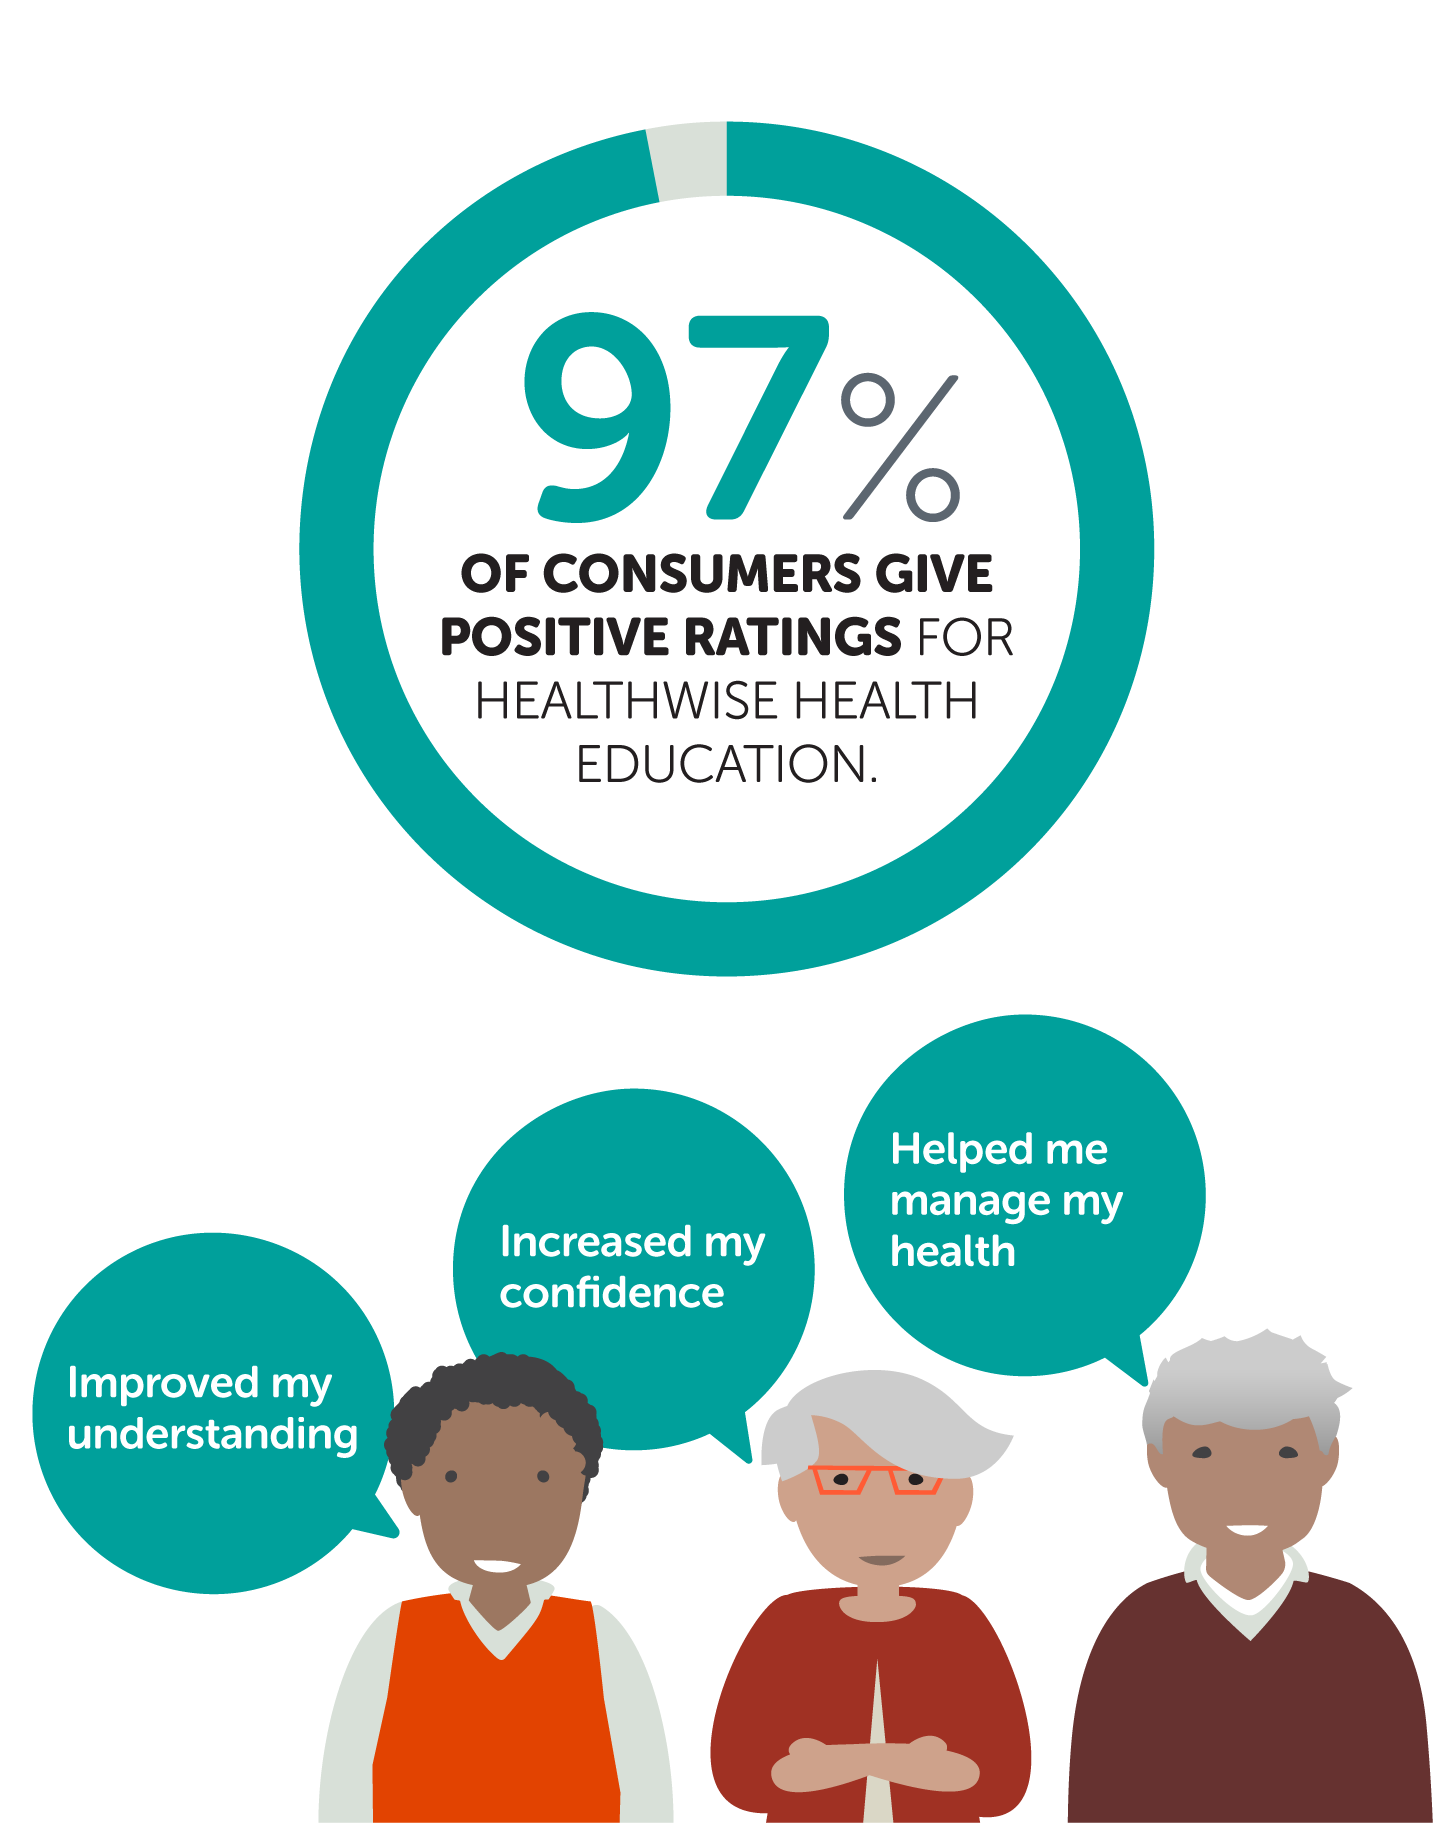 97% of consumers give positive ratings for healthwise health education